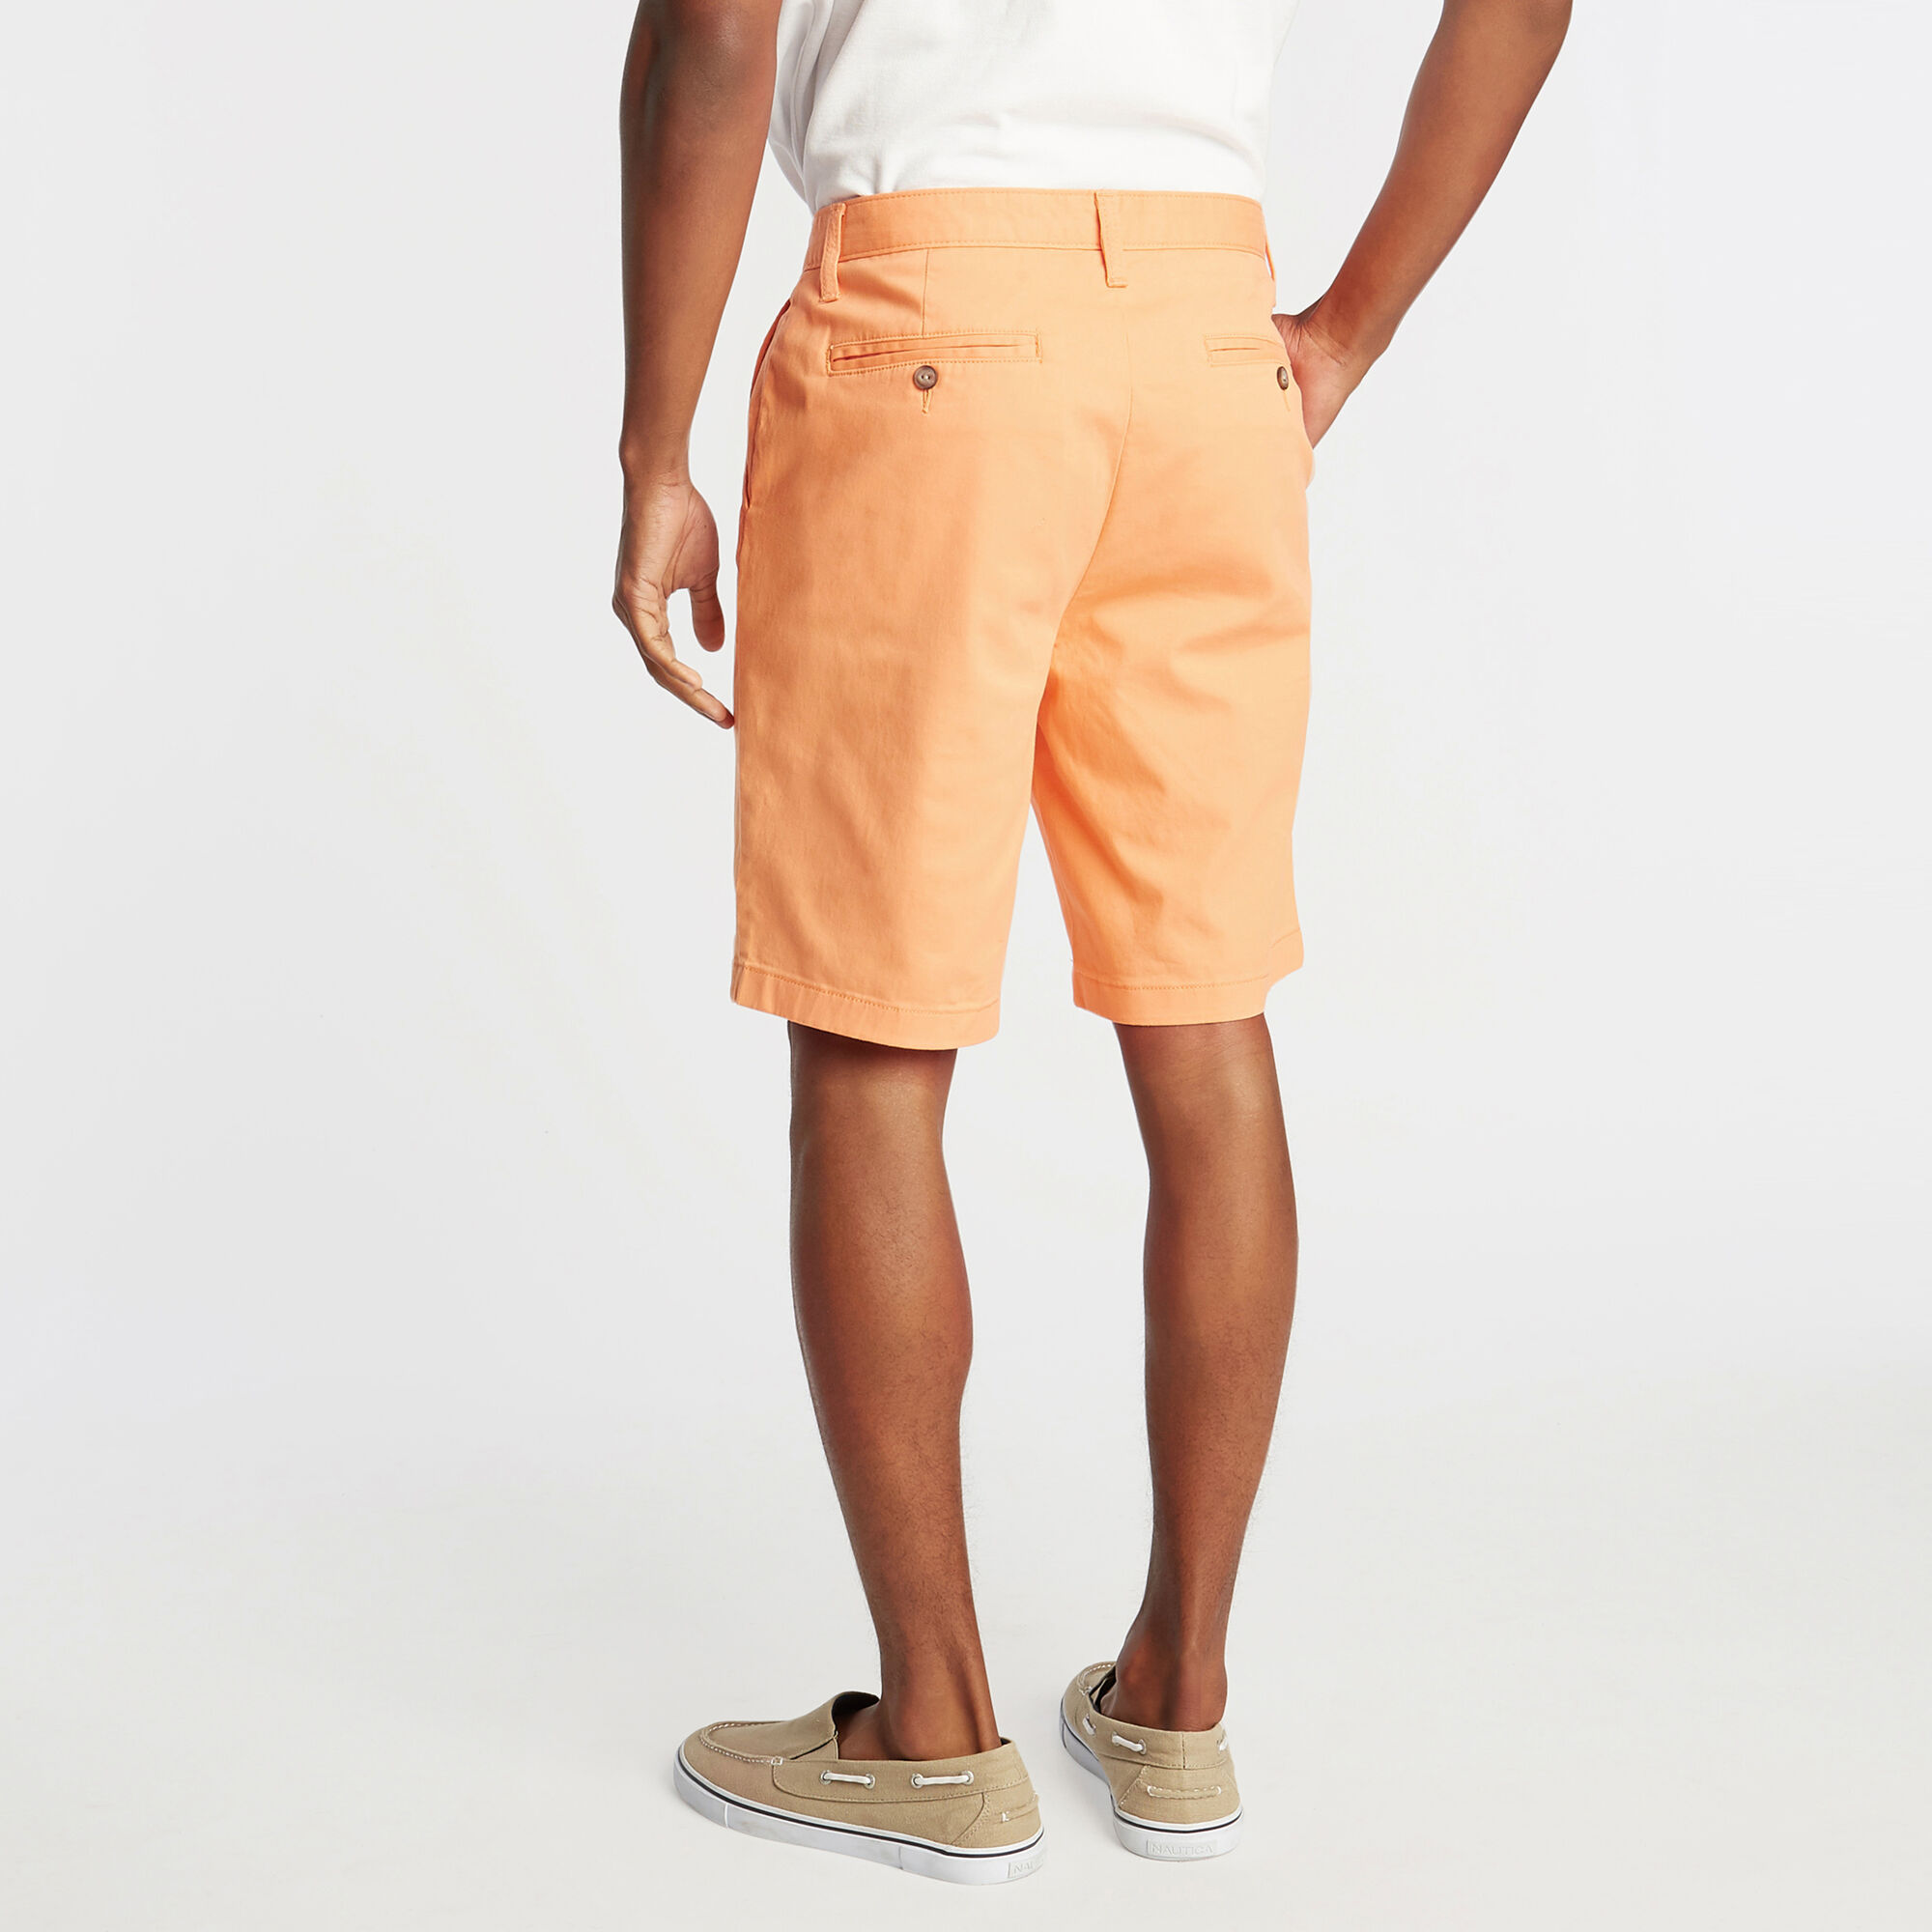 Nautica-Mens-10-034-Classic-Fit-Deck-Shorts-With-Stretch thumbnail 19